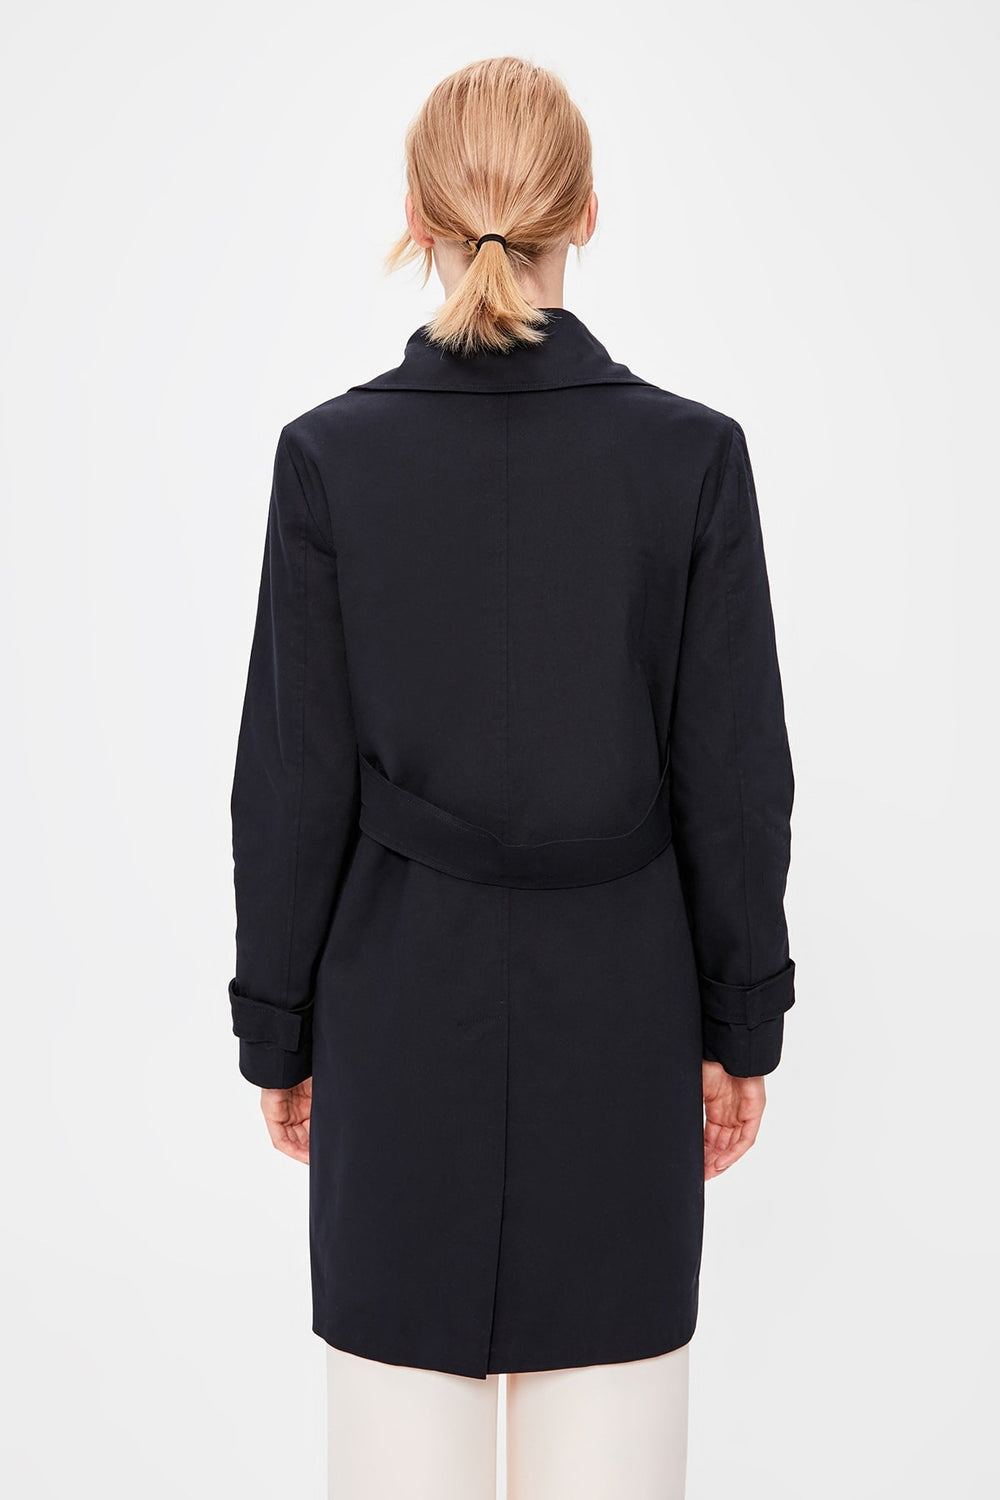 Navy Blue Bone Button Trench Coat - Top Maxy